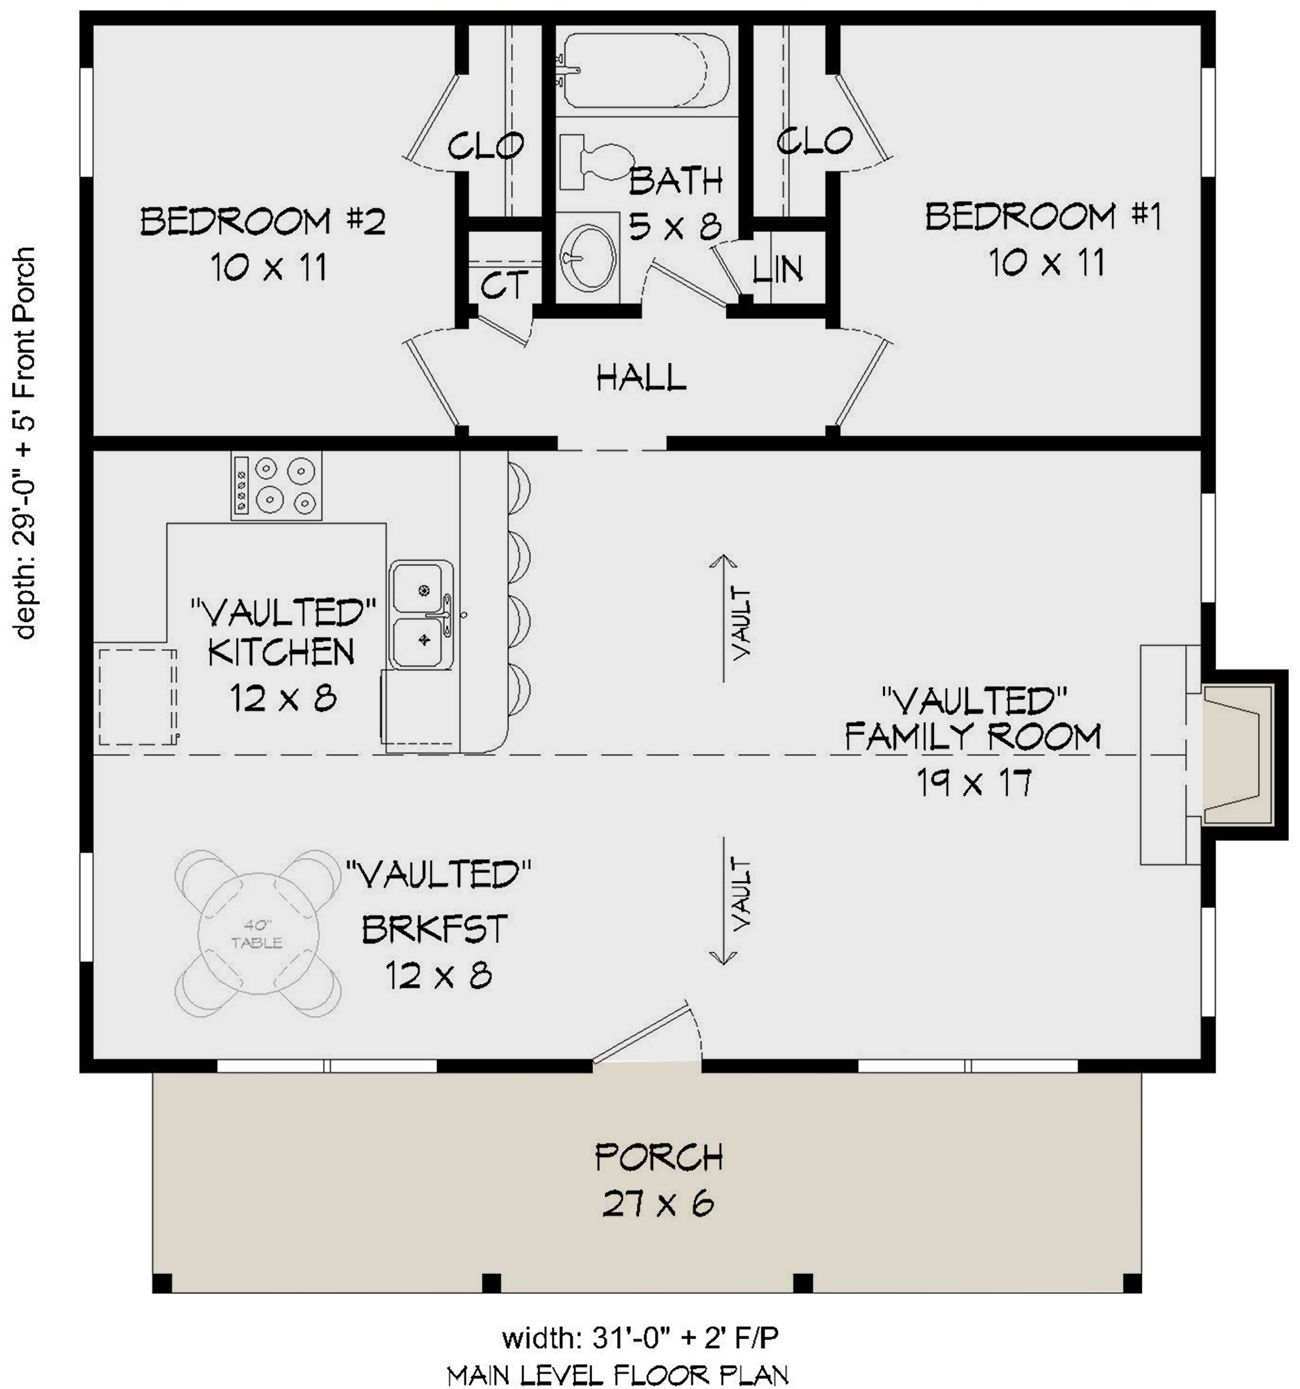 House Plan 940 00139 Cabin Plan 900 Square Feet 2 Bedrooms 1 Bathroom Tiny House Floor Plans Cabin Plans Floor Plans